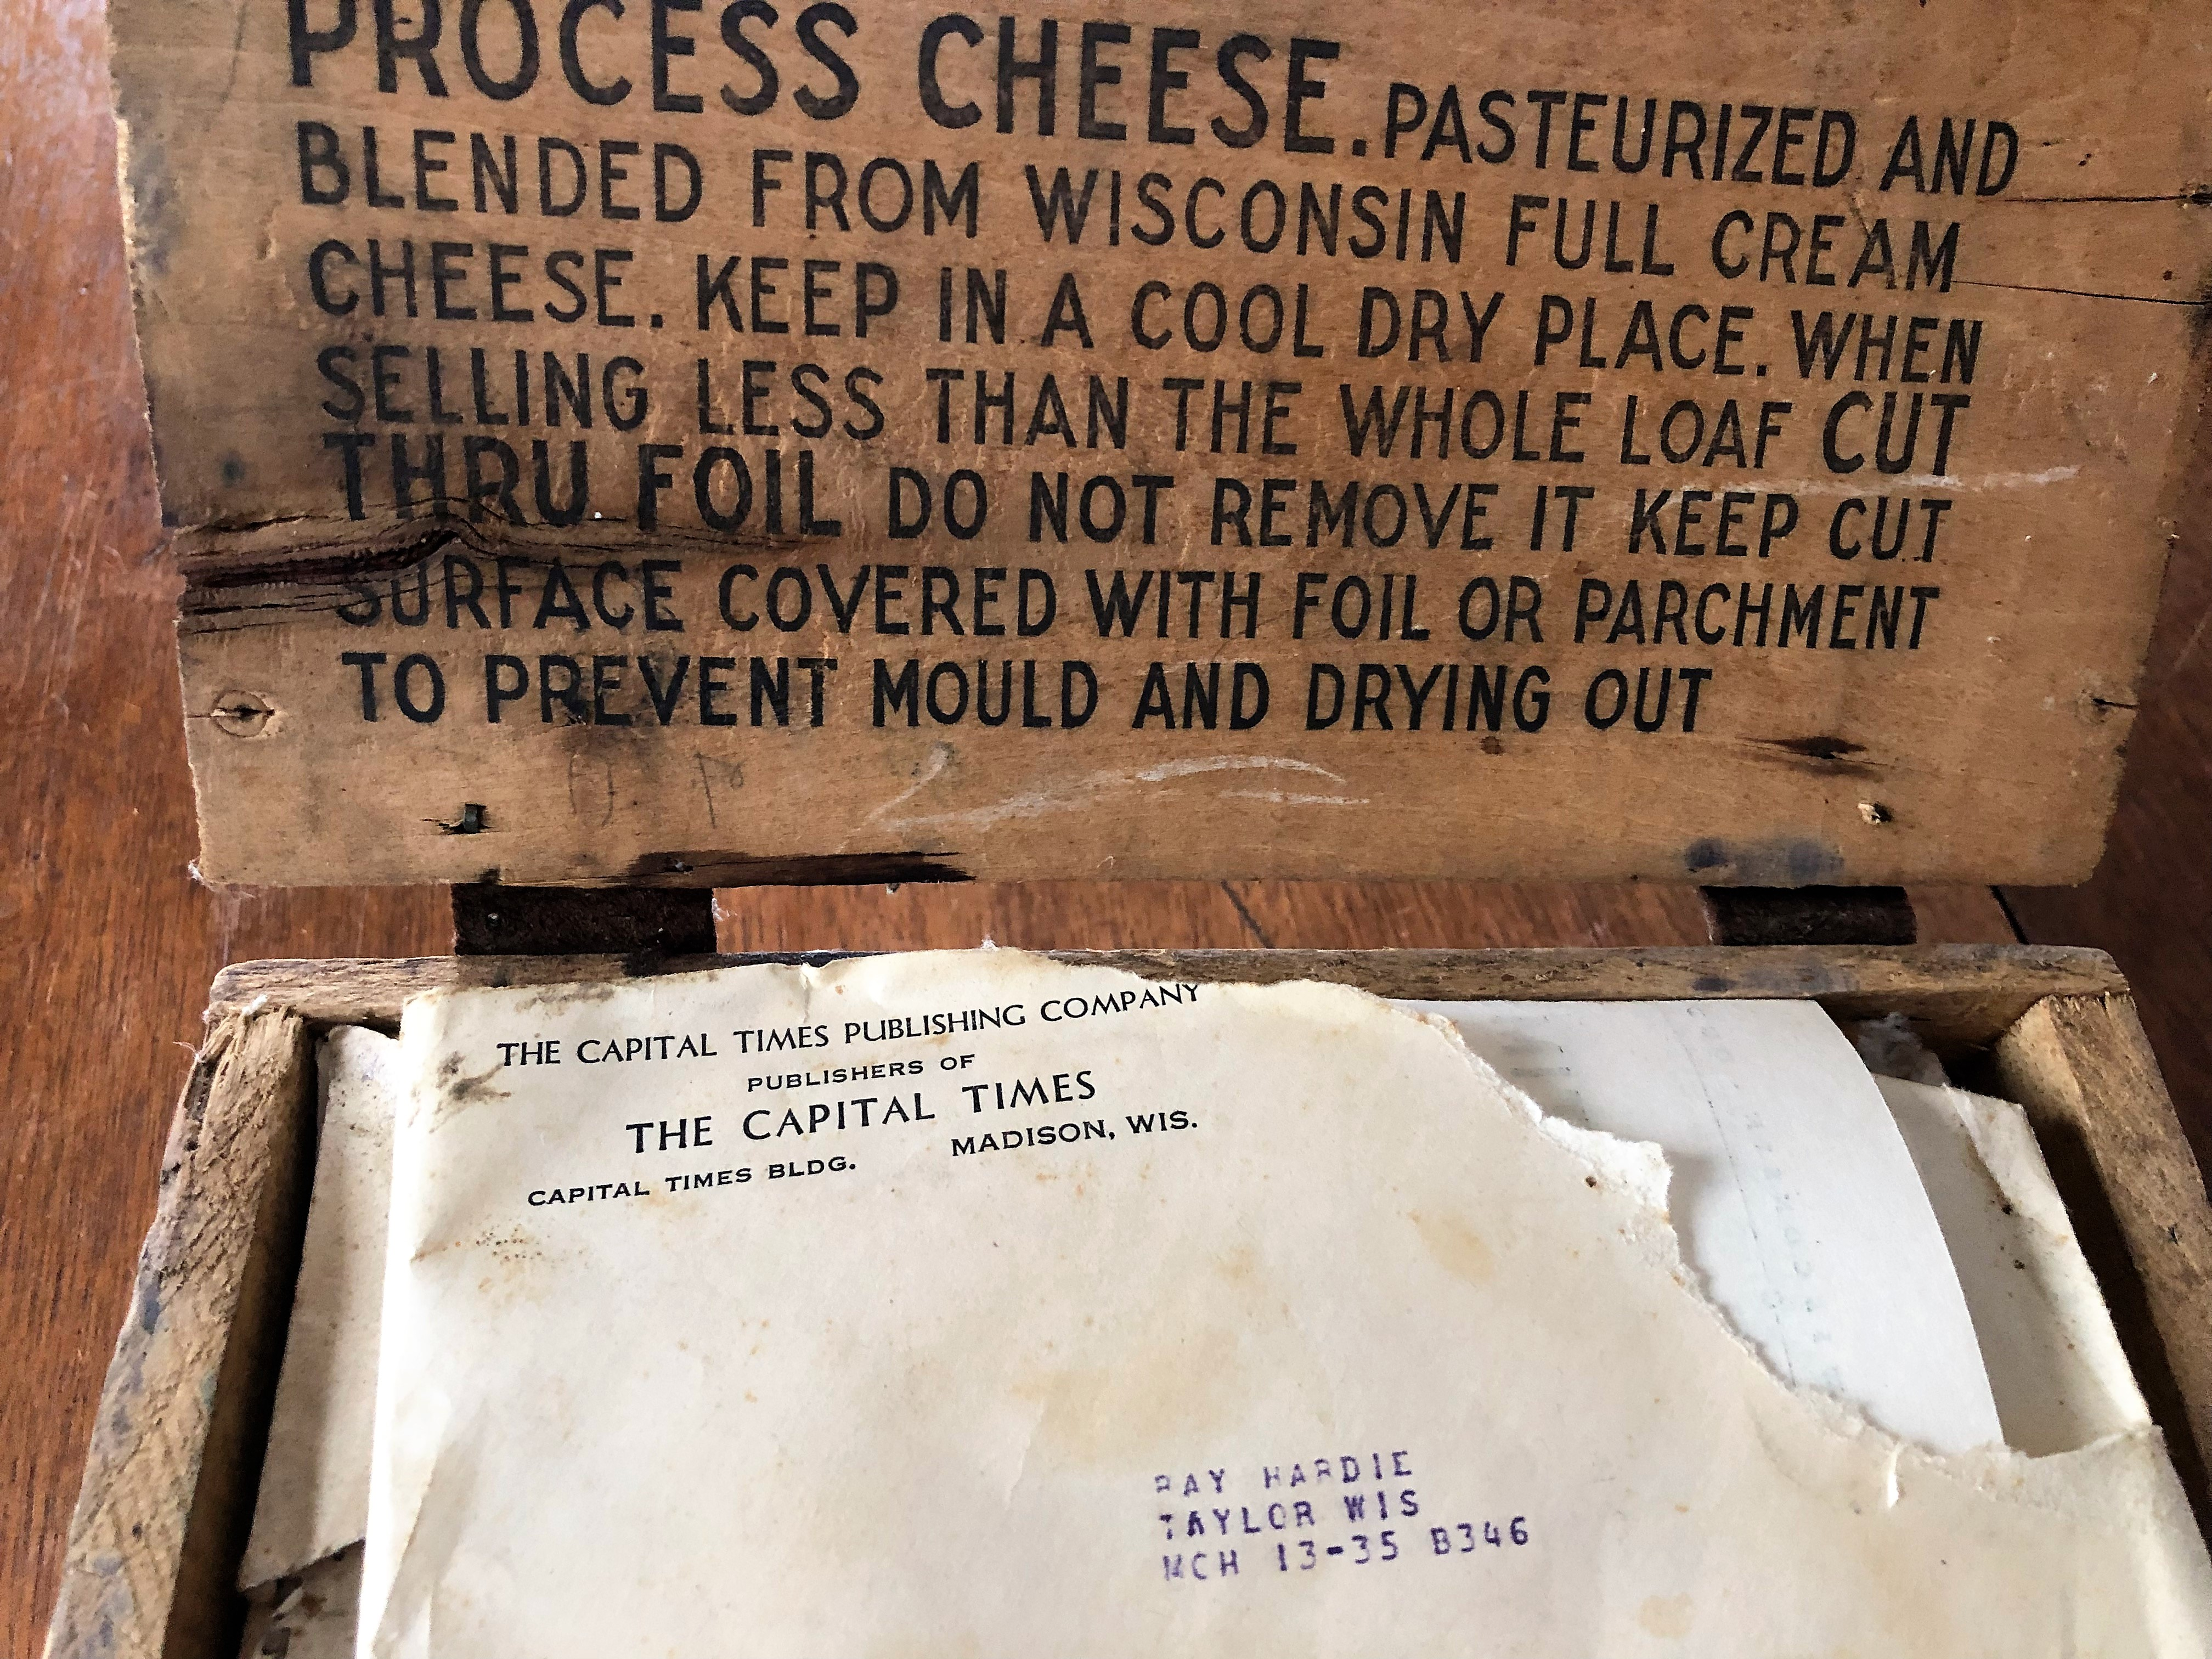 This old cheese box is stuffed with memories